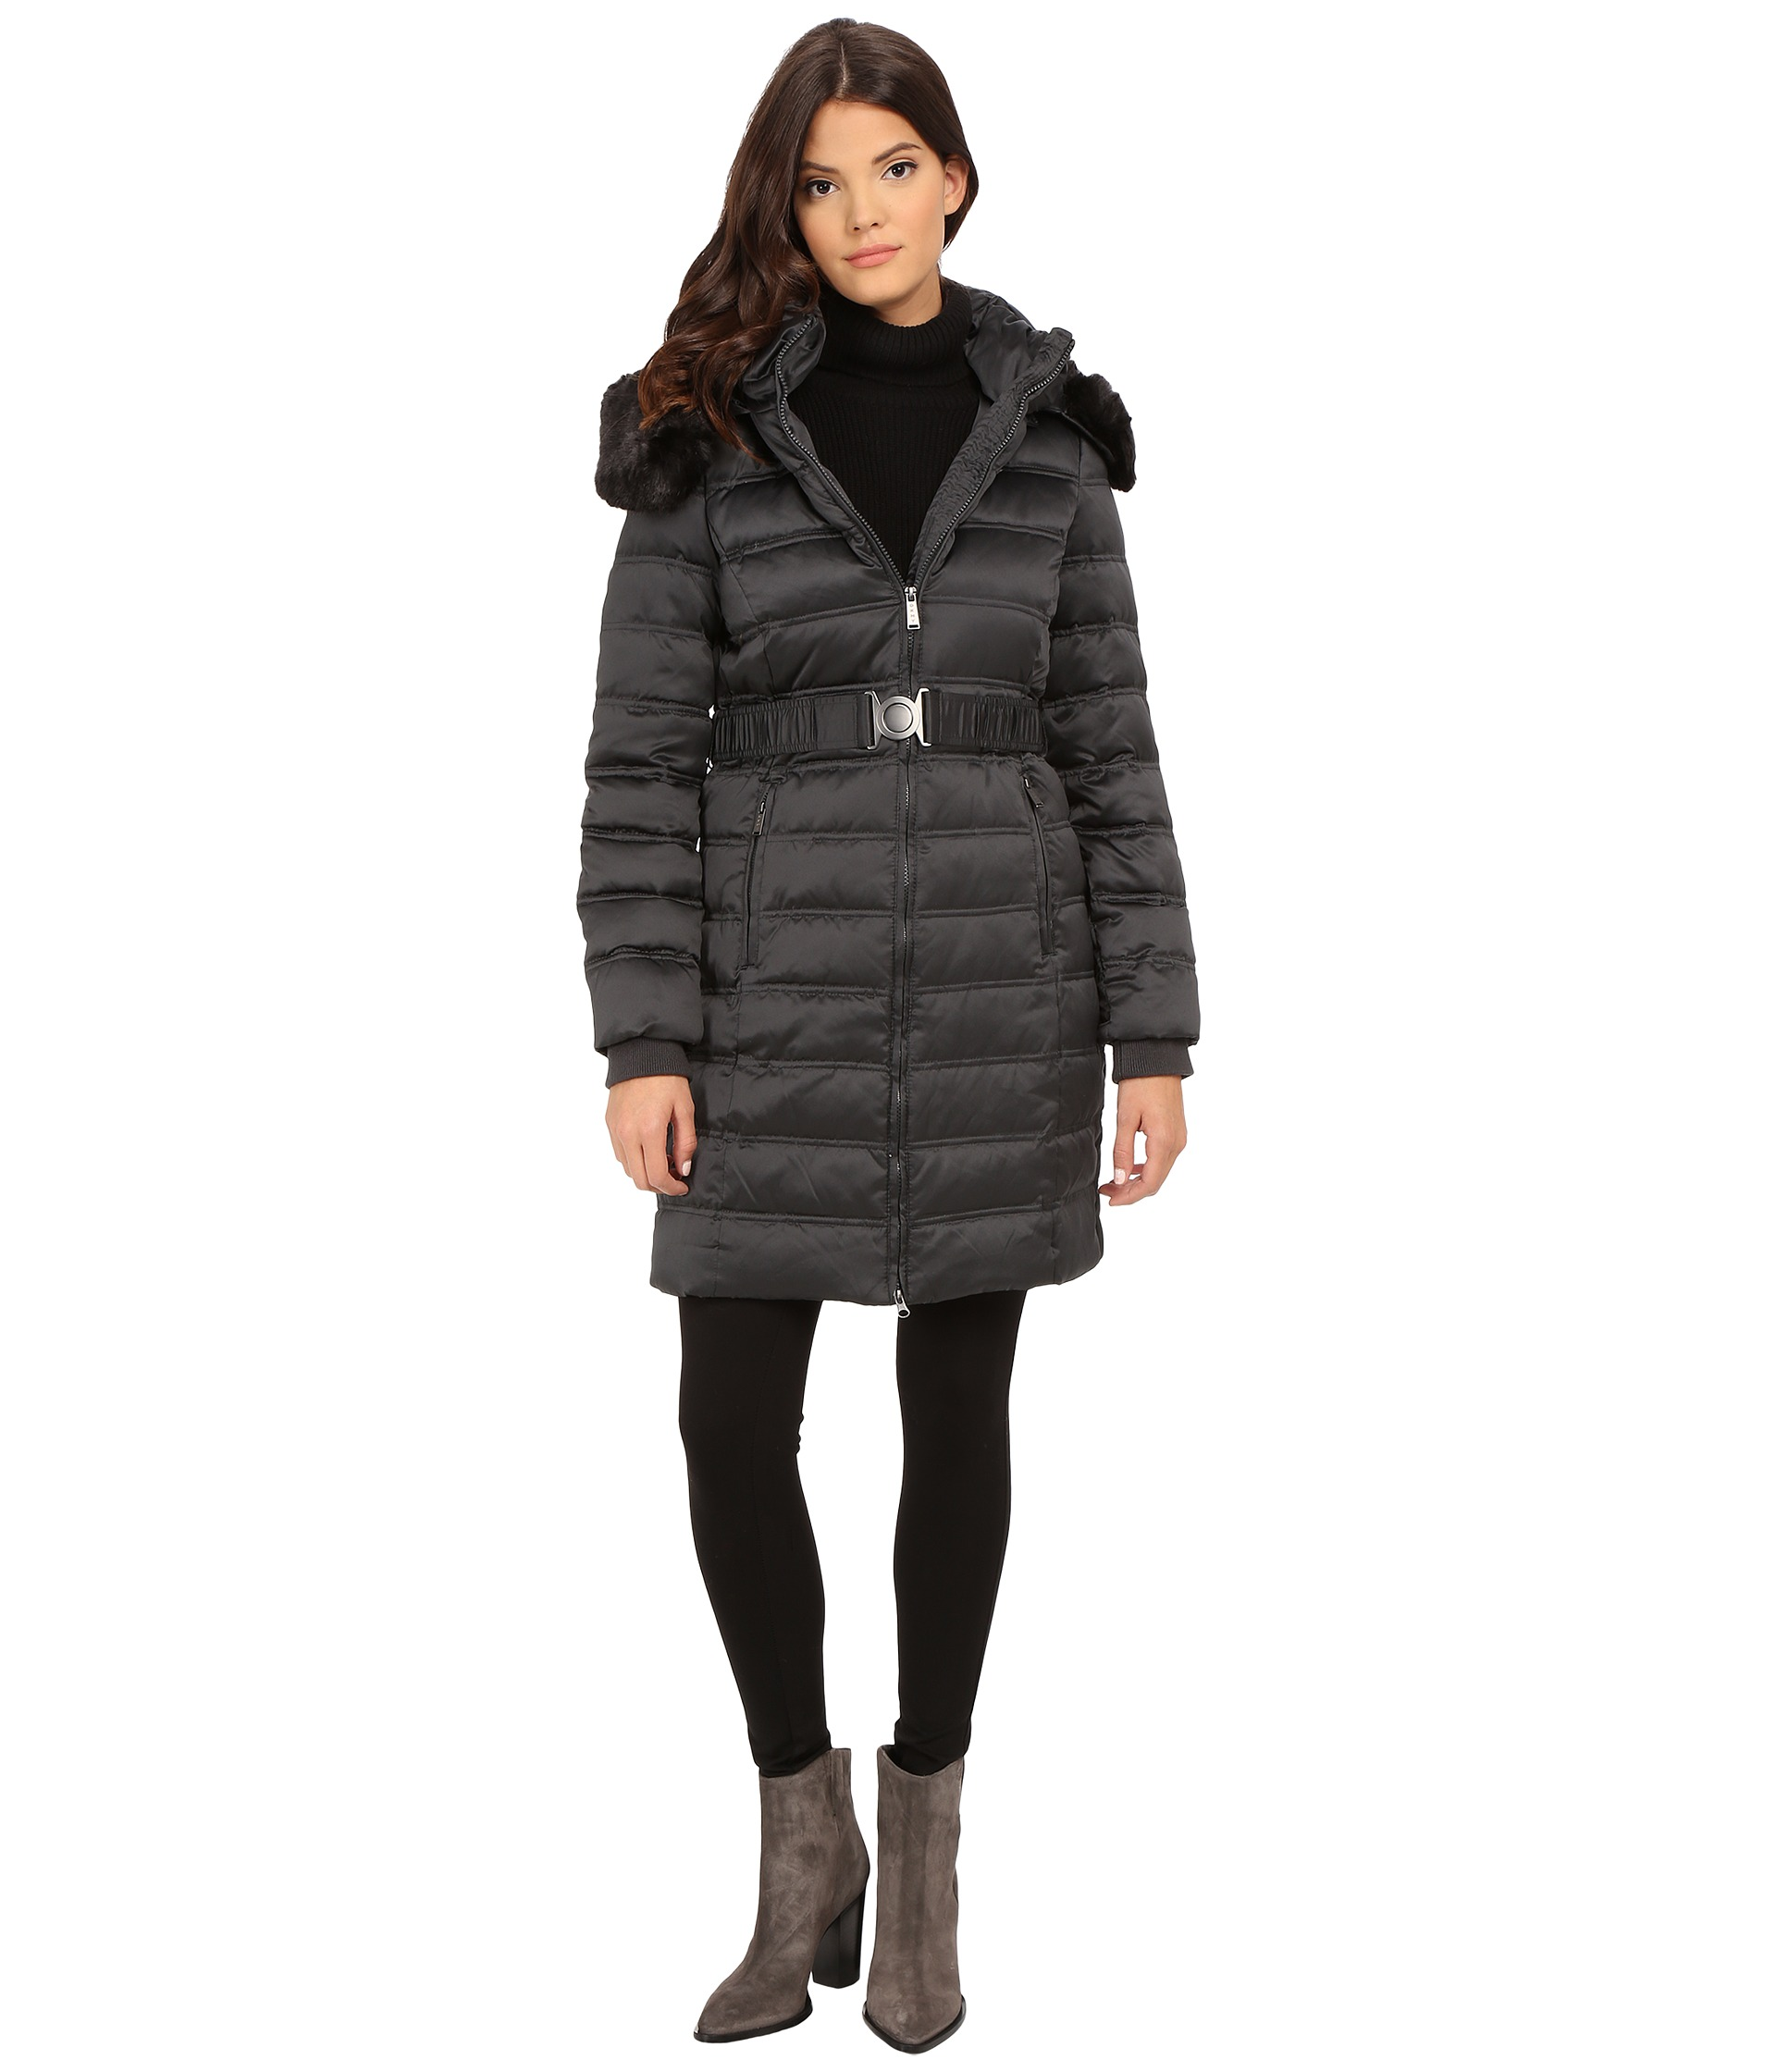 DKNY, Coats & Outerwear at 6pm.com